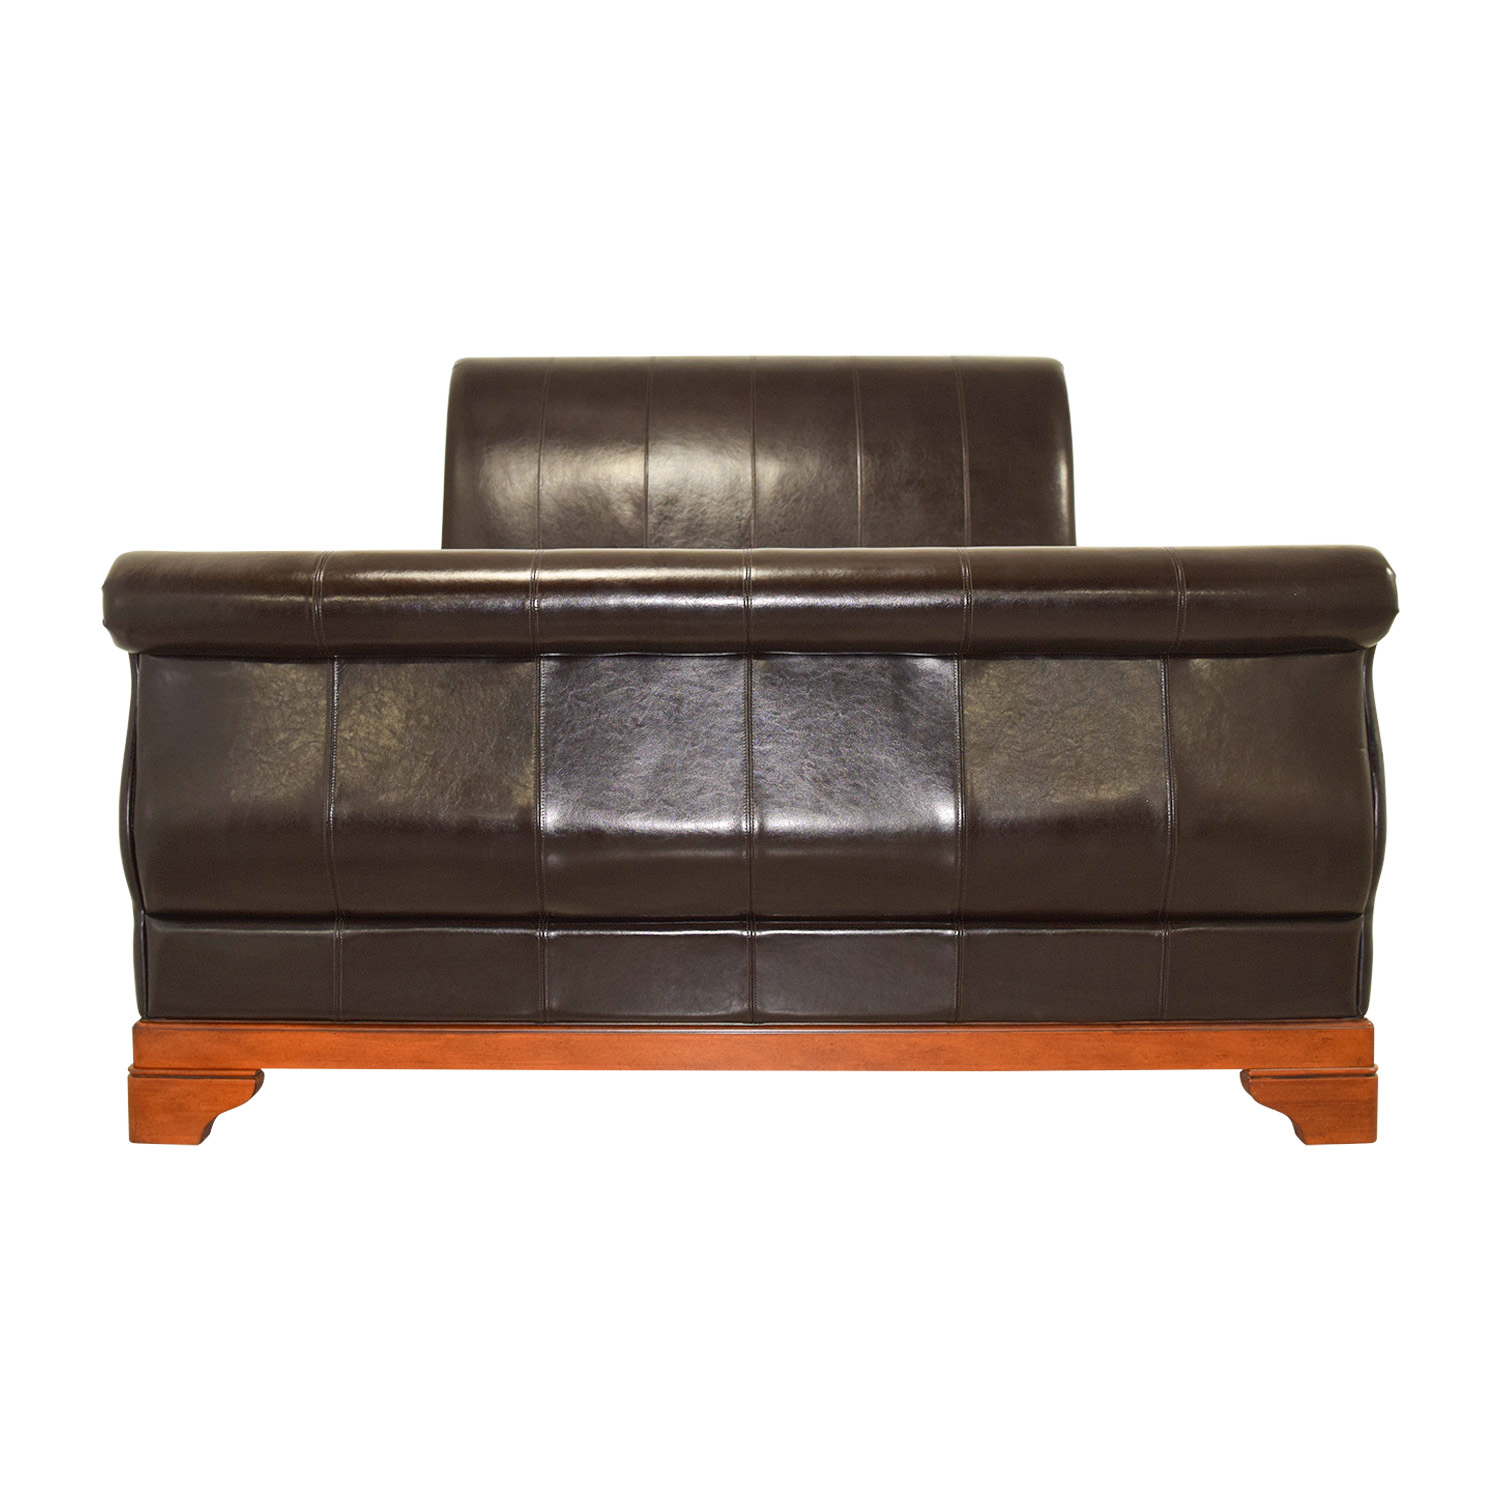 Brown Leather Queen Sleigh Bed Beds